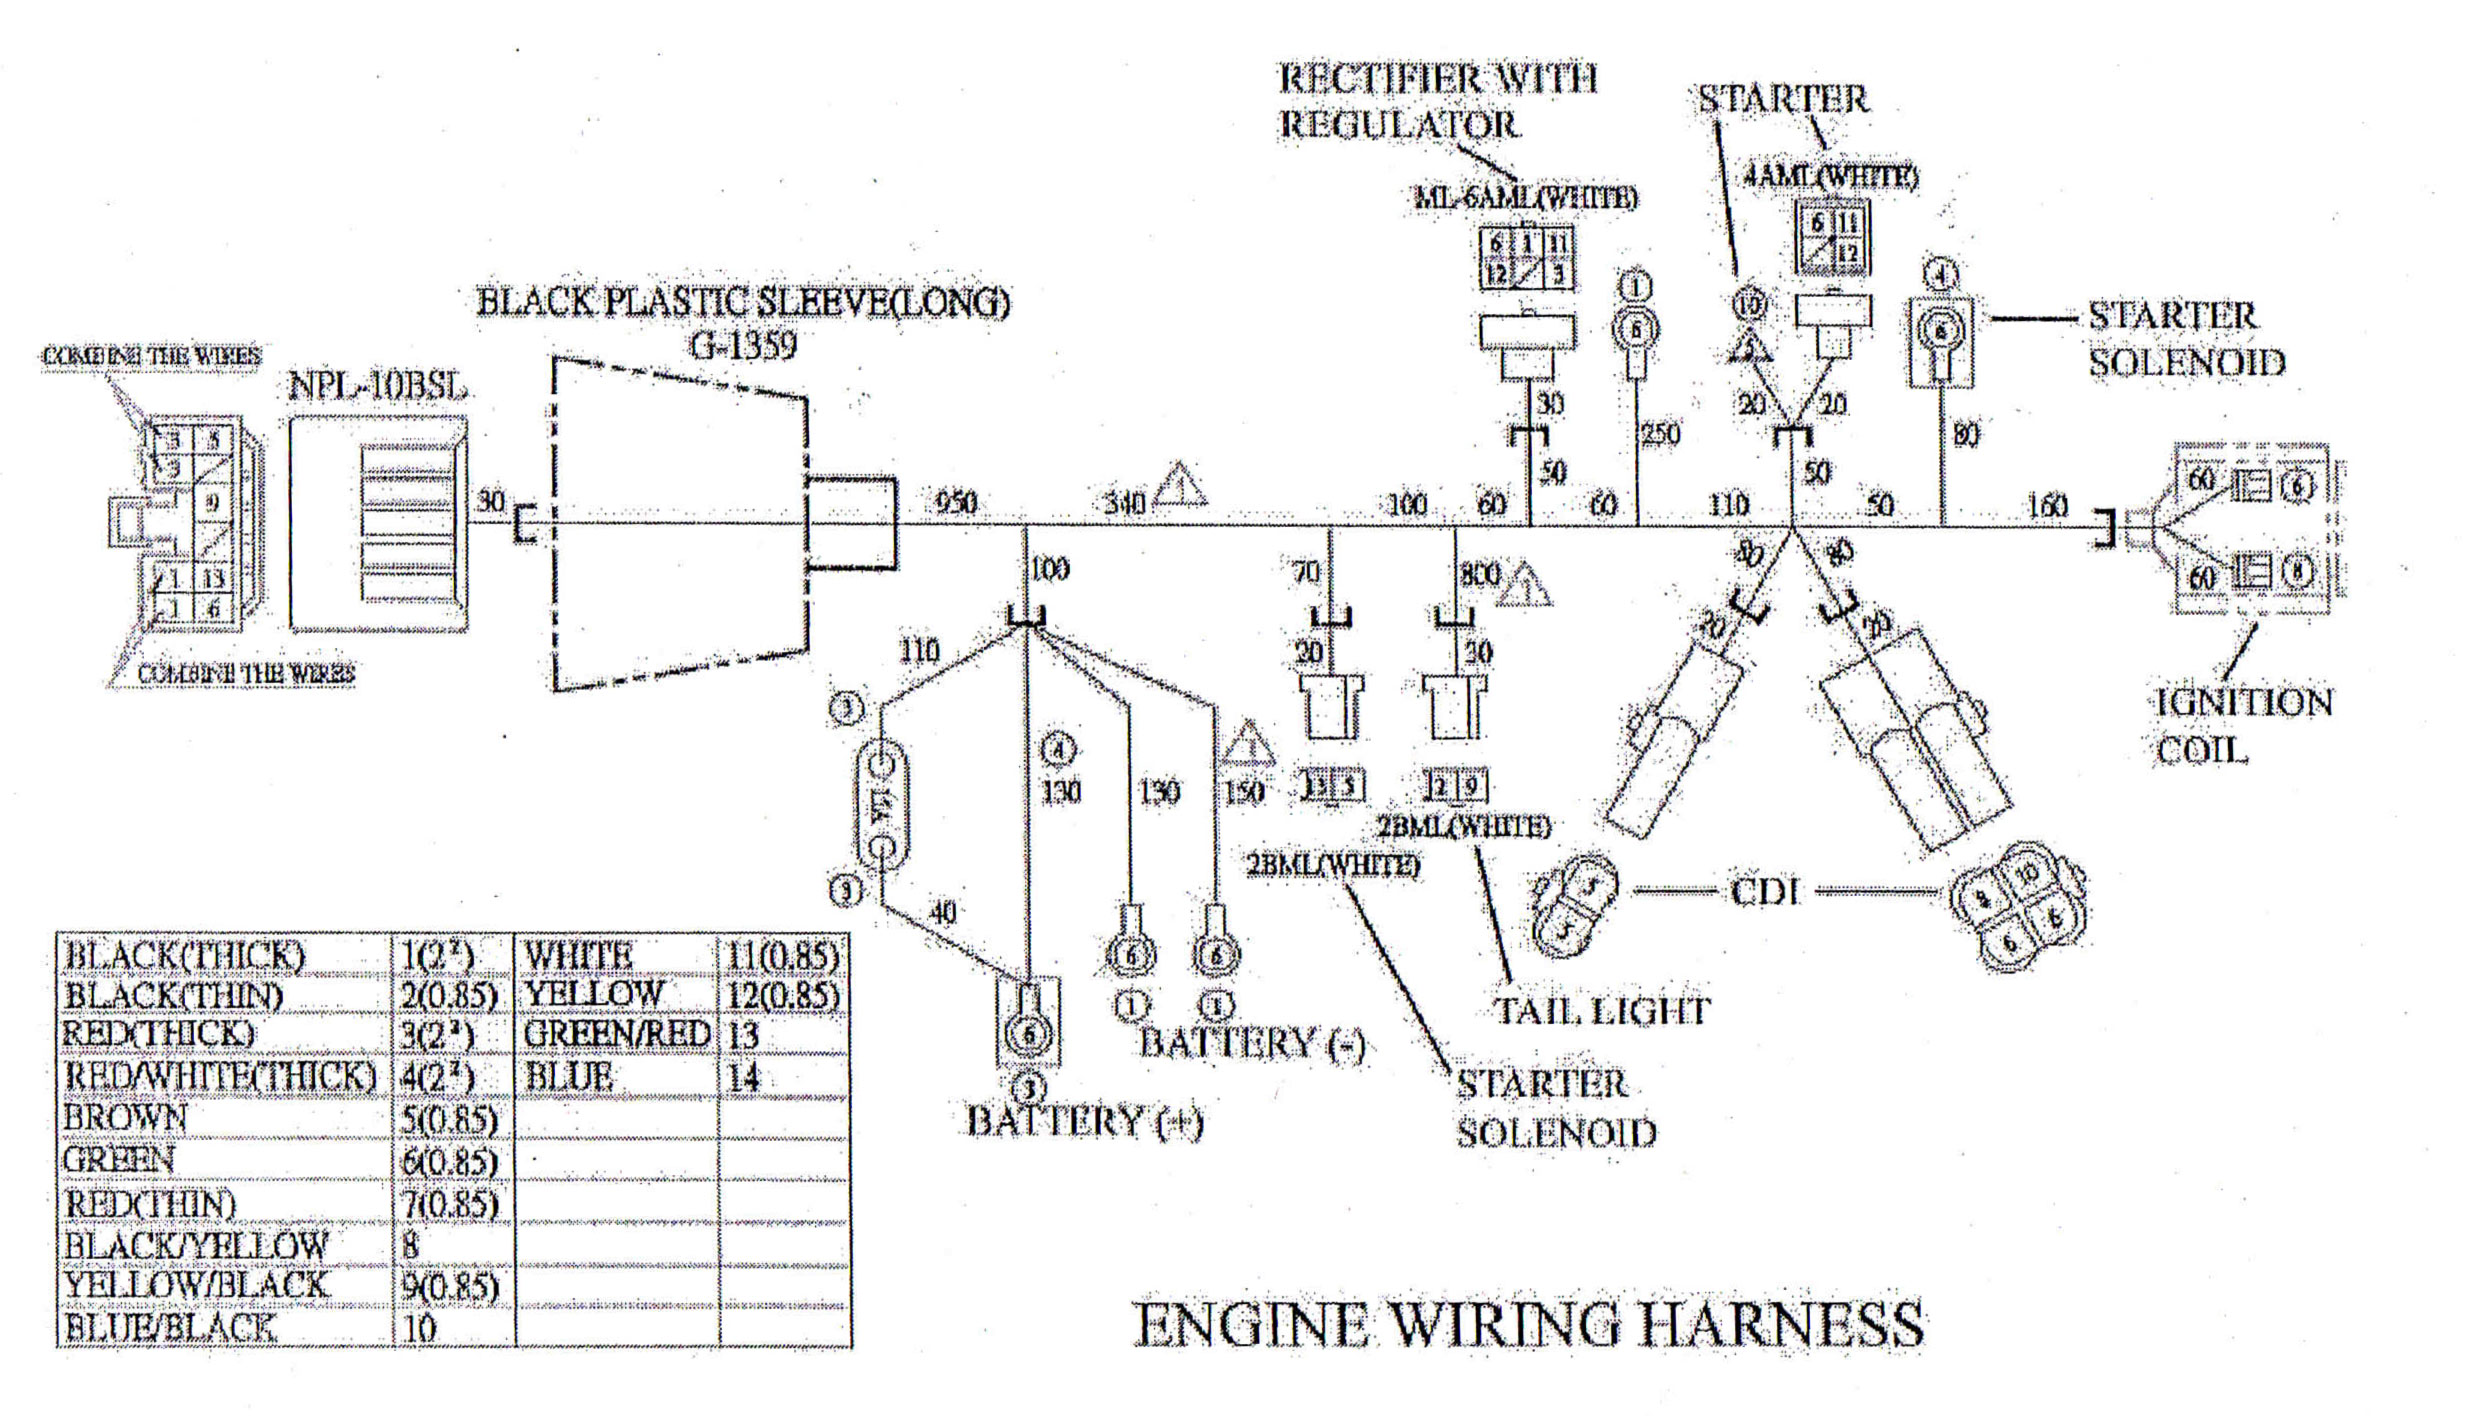 05138_2 150 cc engine wiring diagram wiring diagram simonand  at pacquiaovsvargaslive.co